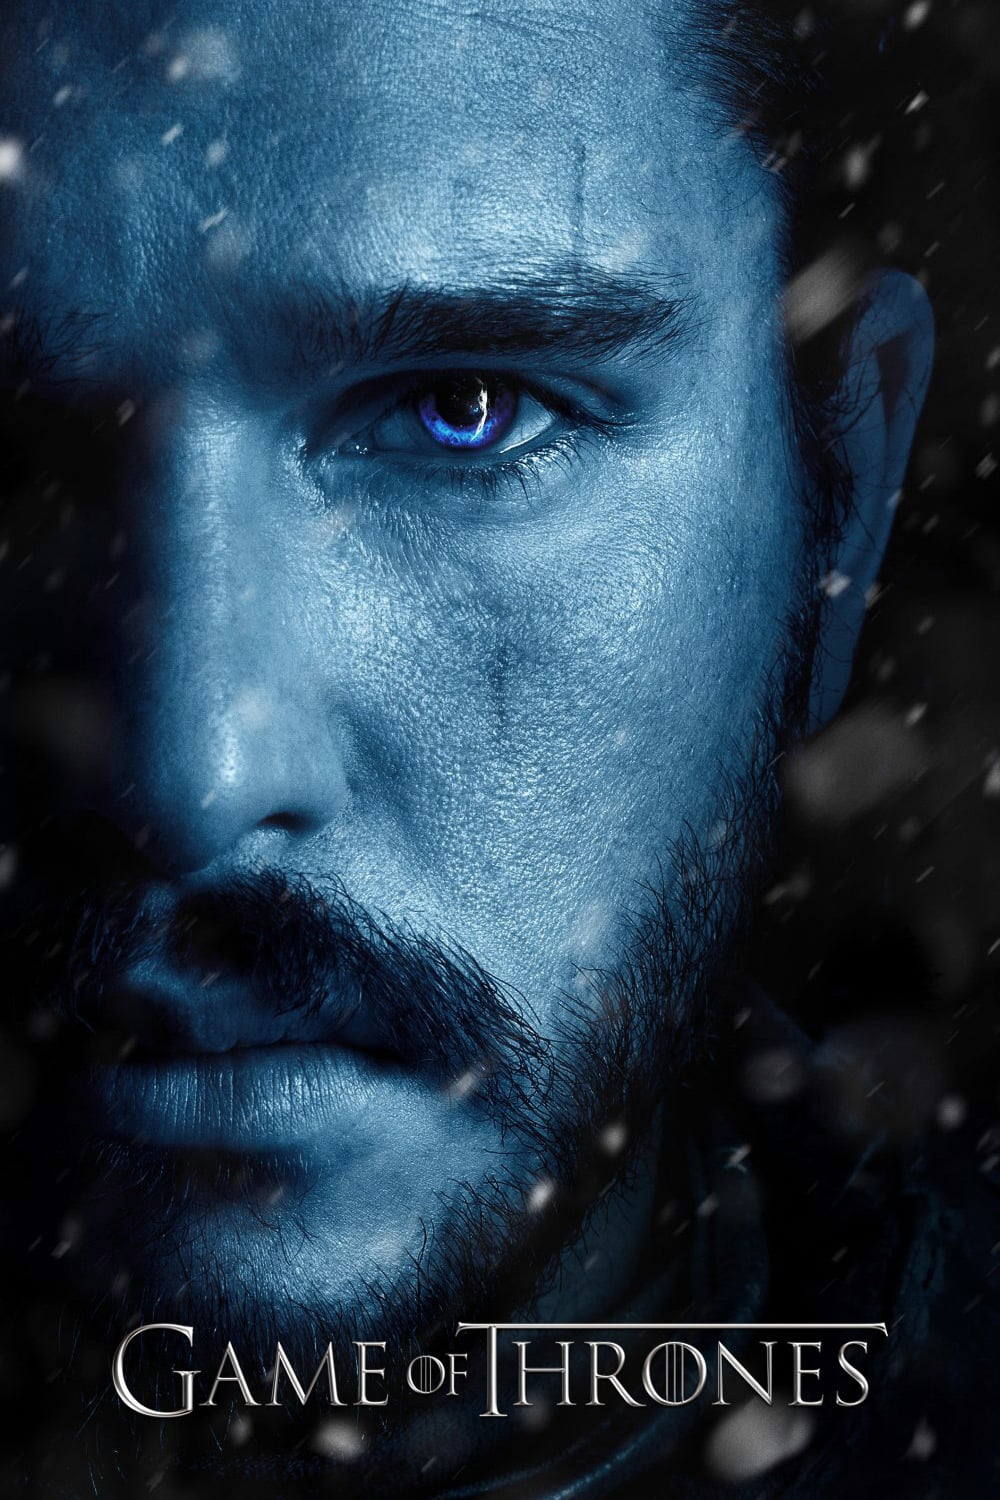 game of thrones poster high quality HD printable wallpapers season 3 stark